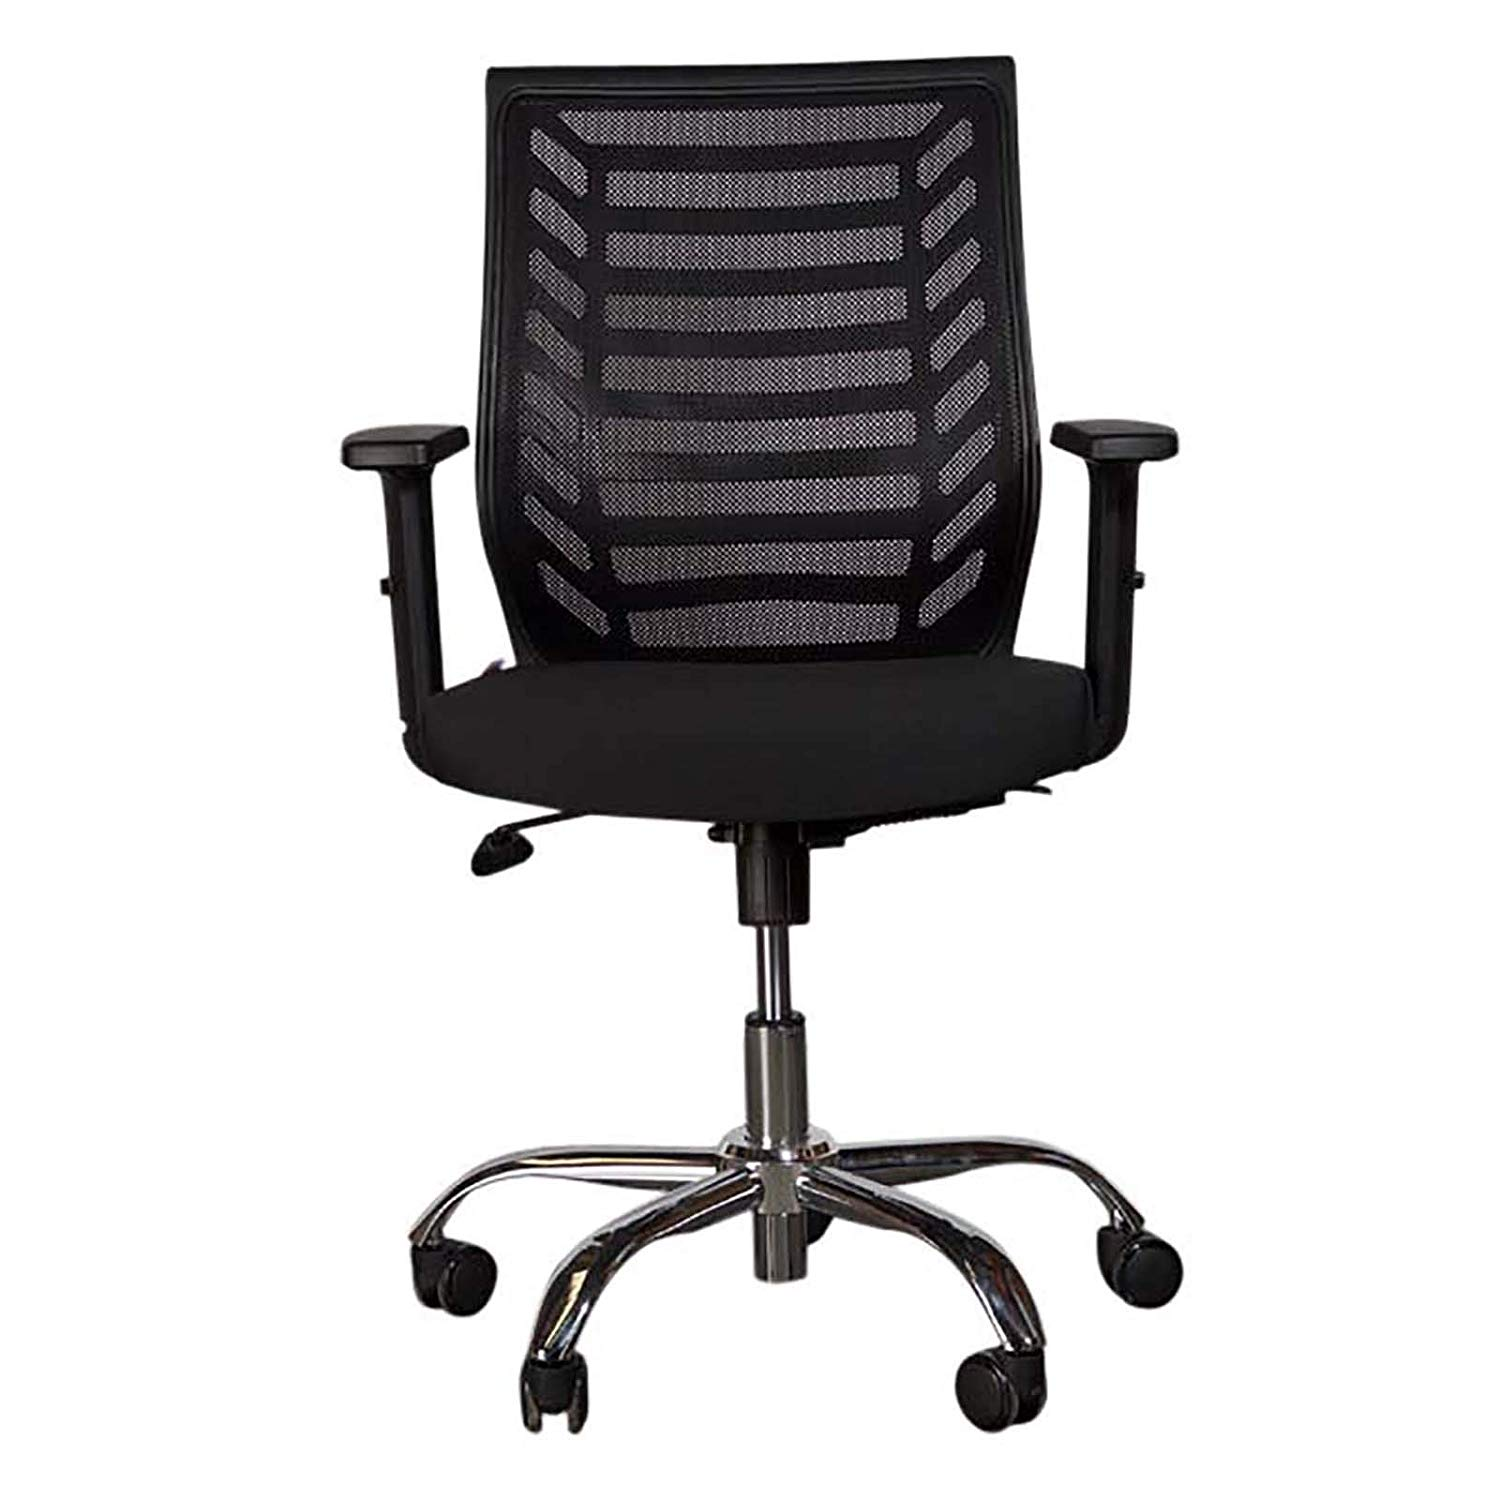 Mahmayi Sleekline 1610 Low Back Mesh Chair - Black (pc)